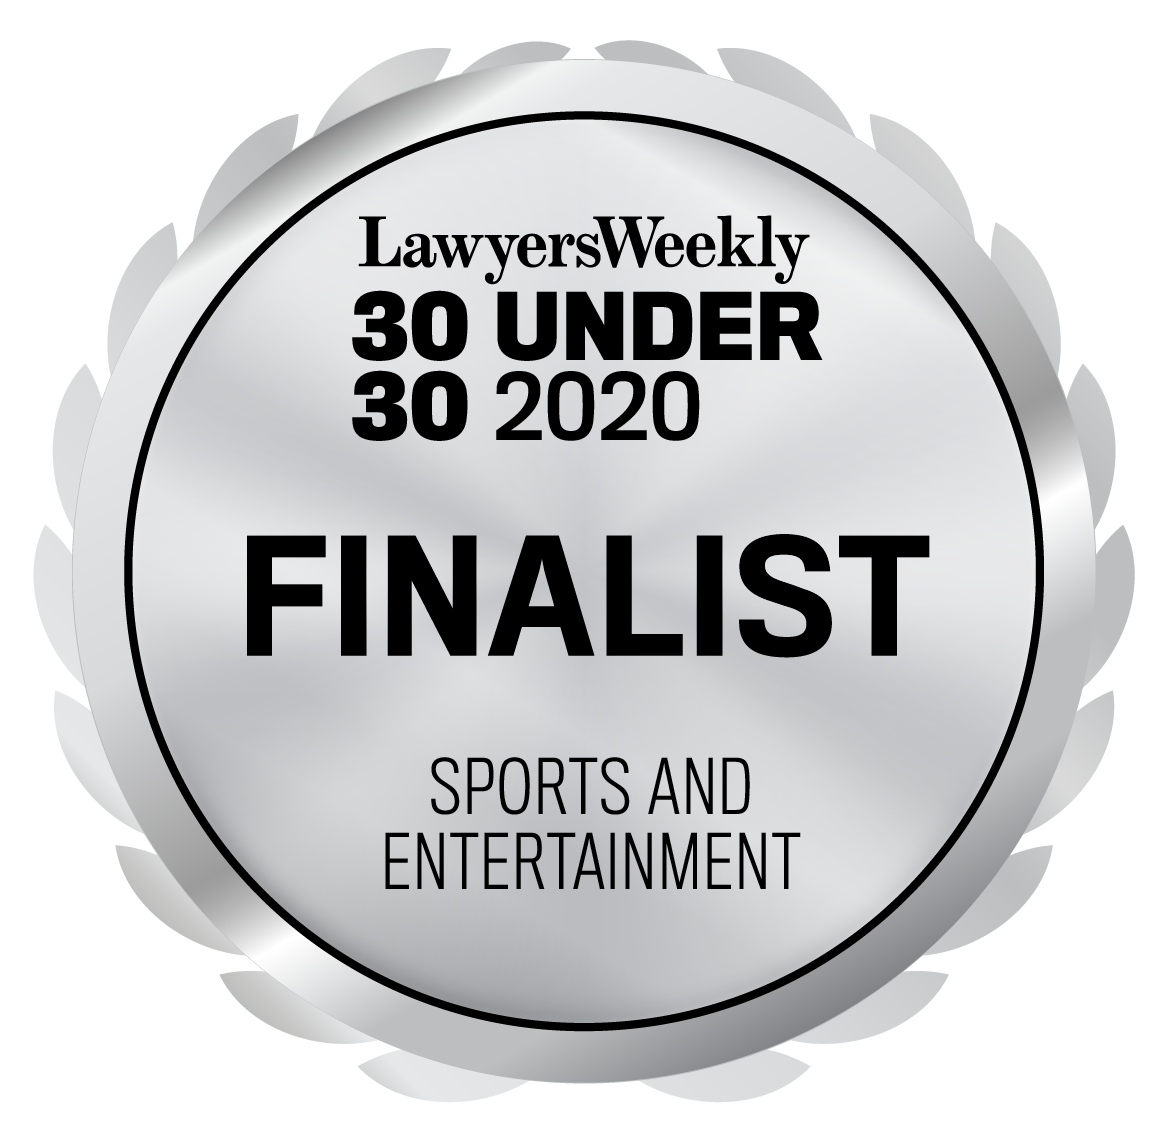 30 Under 30 Awards - Sports and Entertainment- Finalist - 2020